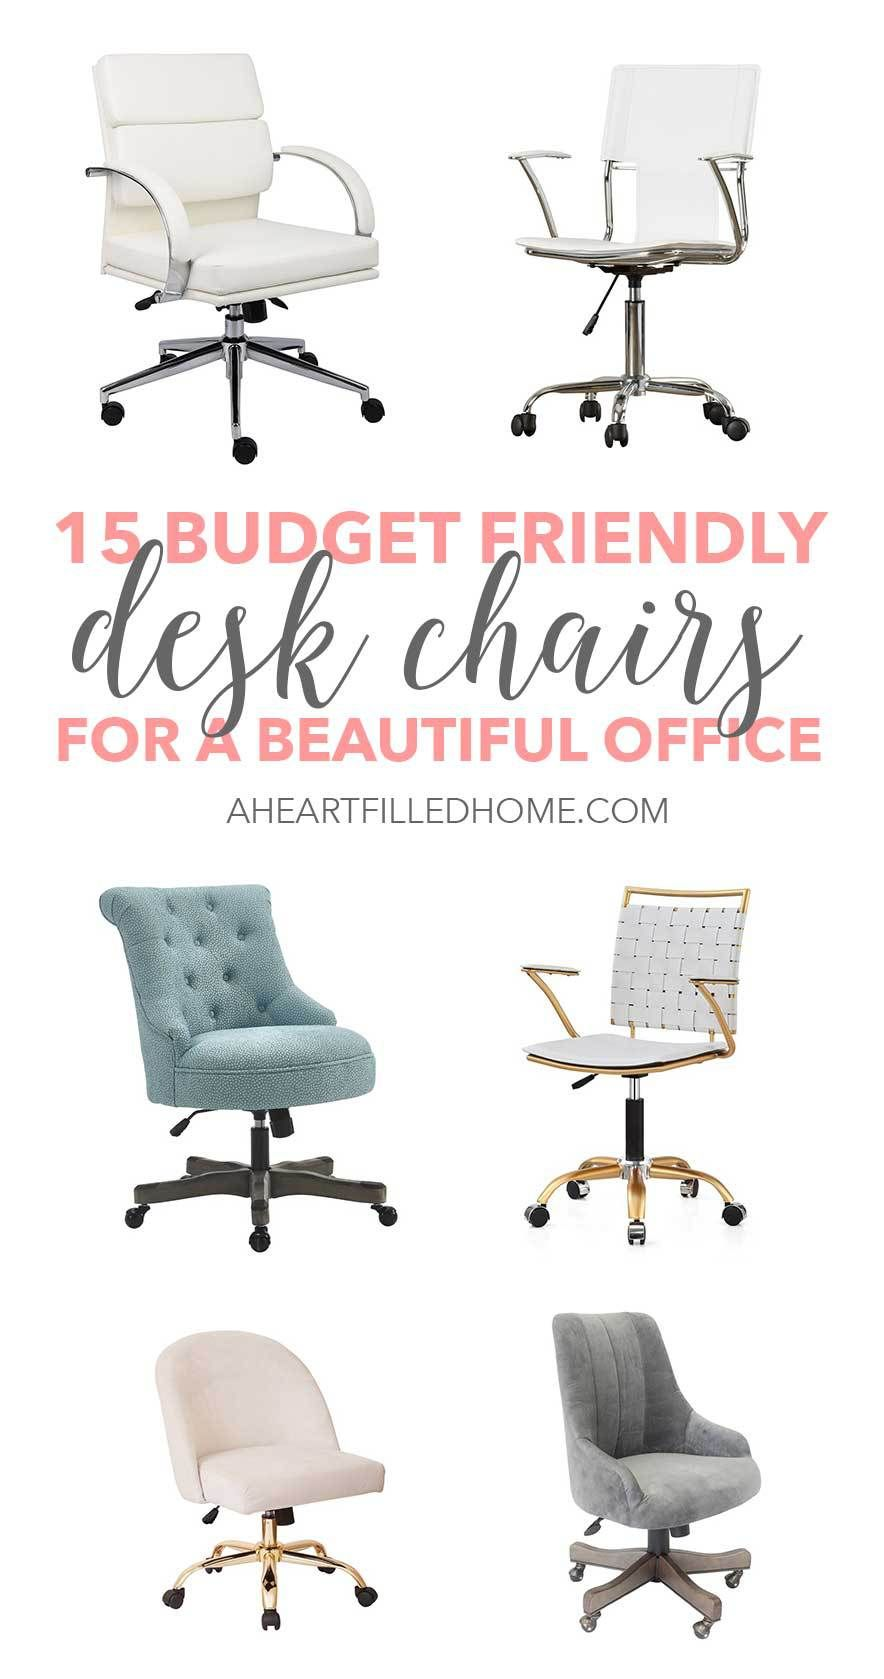 15 Budget Friendly Desk Chairs For A Beautiful Office A Heart Filled Home Diy Home Decor Desk Chair Comfy Best Office Chair Home Office Chairs